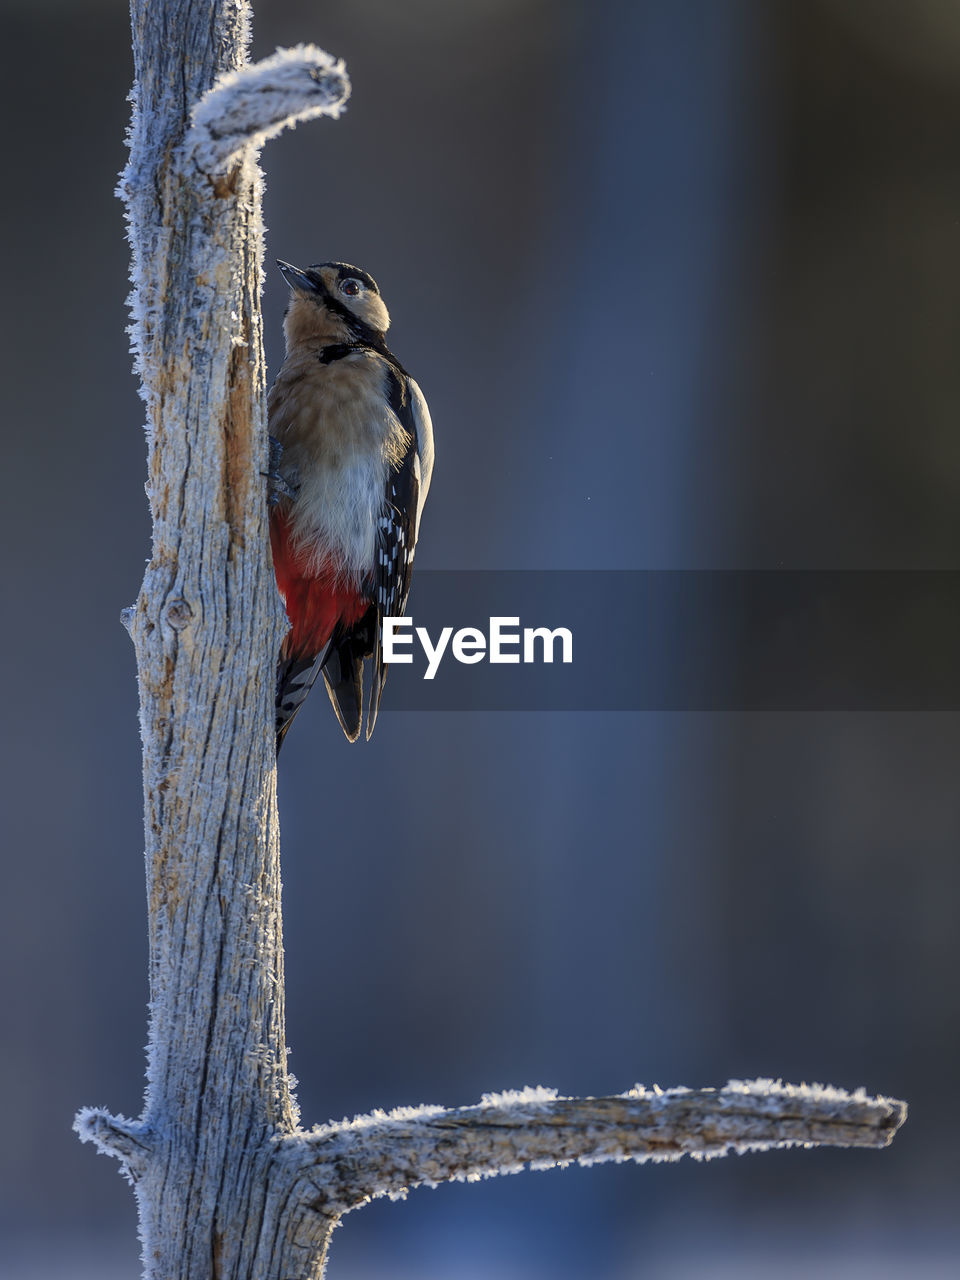 bird, animals in the wild, vertebrate, animal themes, animal wildlife, one animal, animal, perching, focus on foreground, no people, tree, winter, nature, cold temperature, day, close-up, branch, outdoors, snow, woodpecker